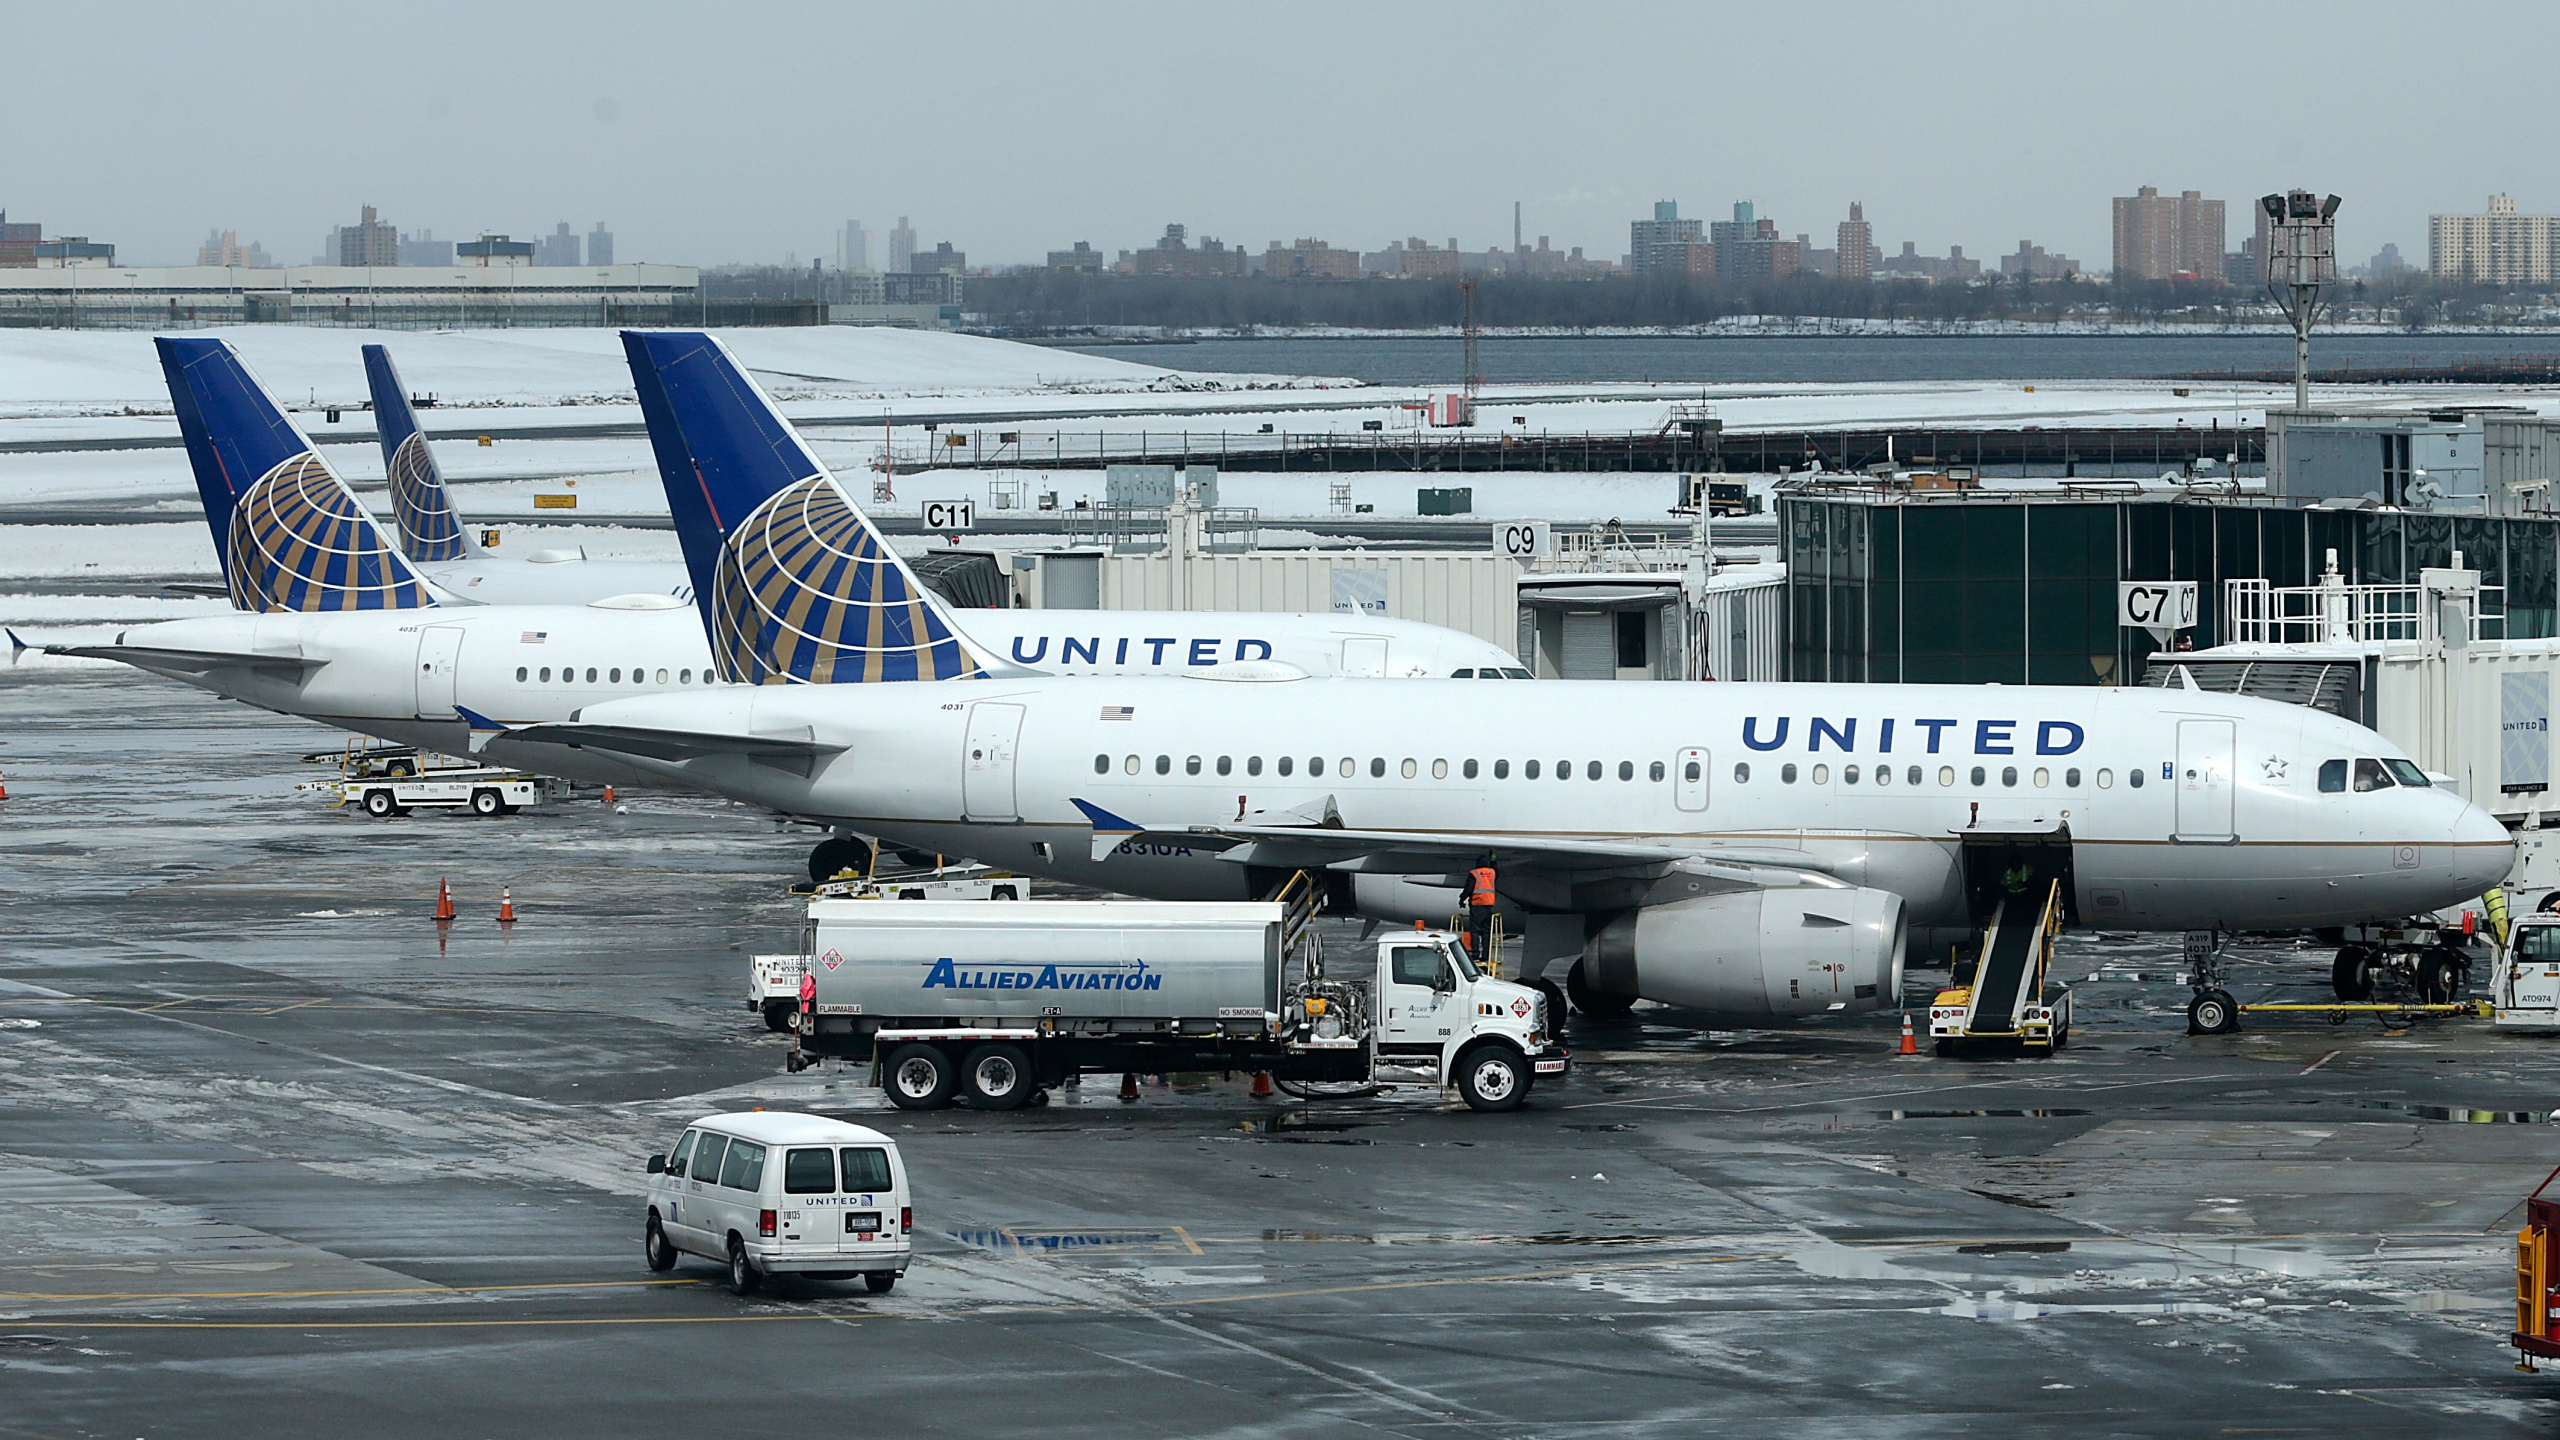 United_Airlines_Dead_Dog_50414-159532.jpg70740344